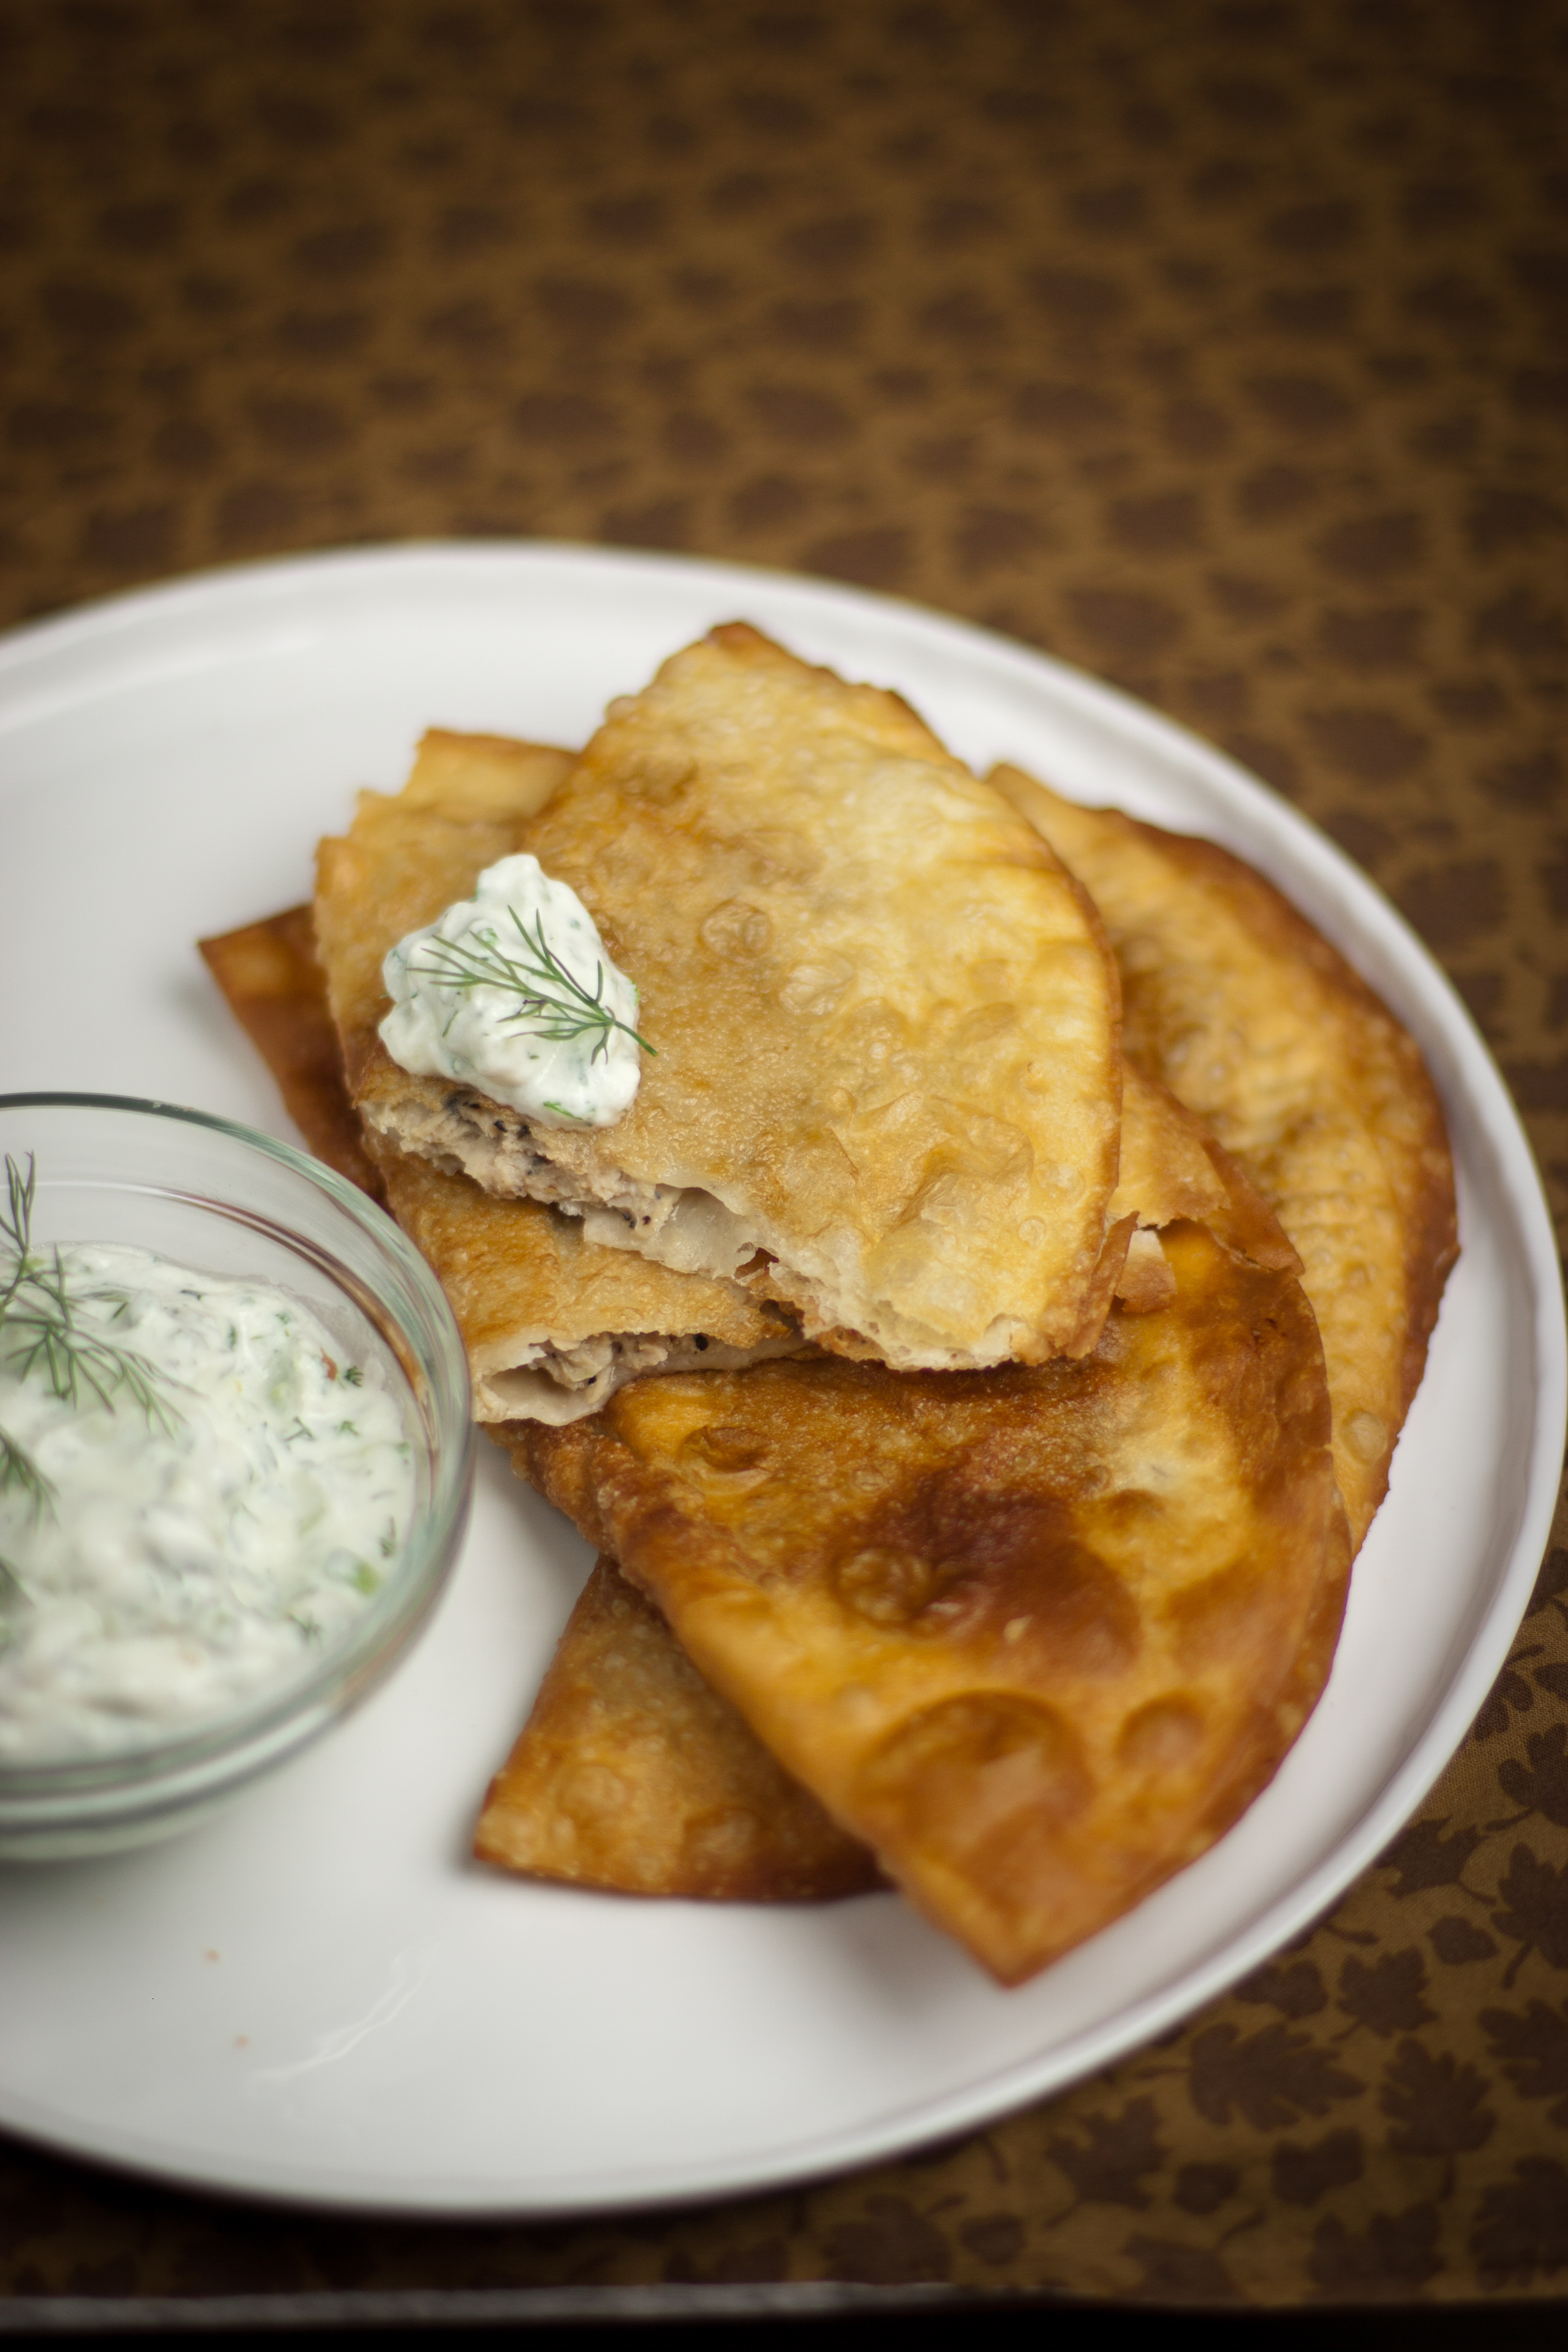 Quick Chebureki - Use regular flour tortillas to make these crispy pockets filled with succulent meat filling for dinner or a snack. No one will be able to refuse these!